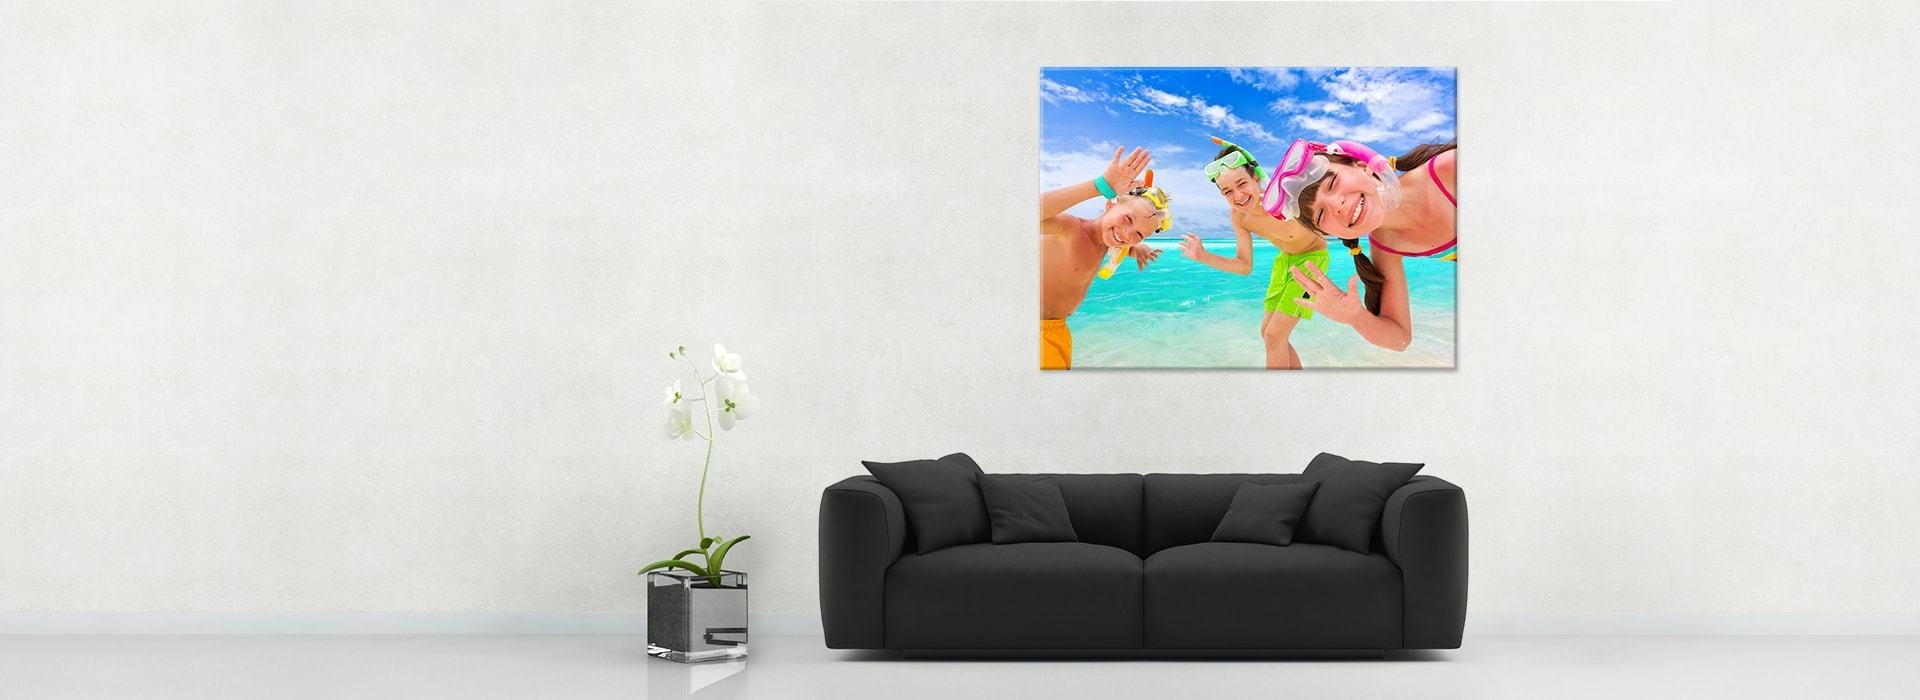 Canvas Prints | Canvas Factory Throughout Recent Canvas Wall Art Of Philippines (Gallery 6 of 15)